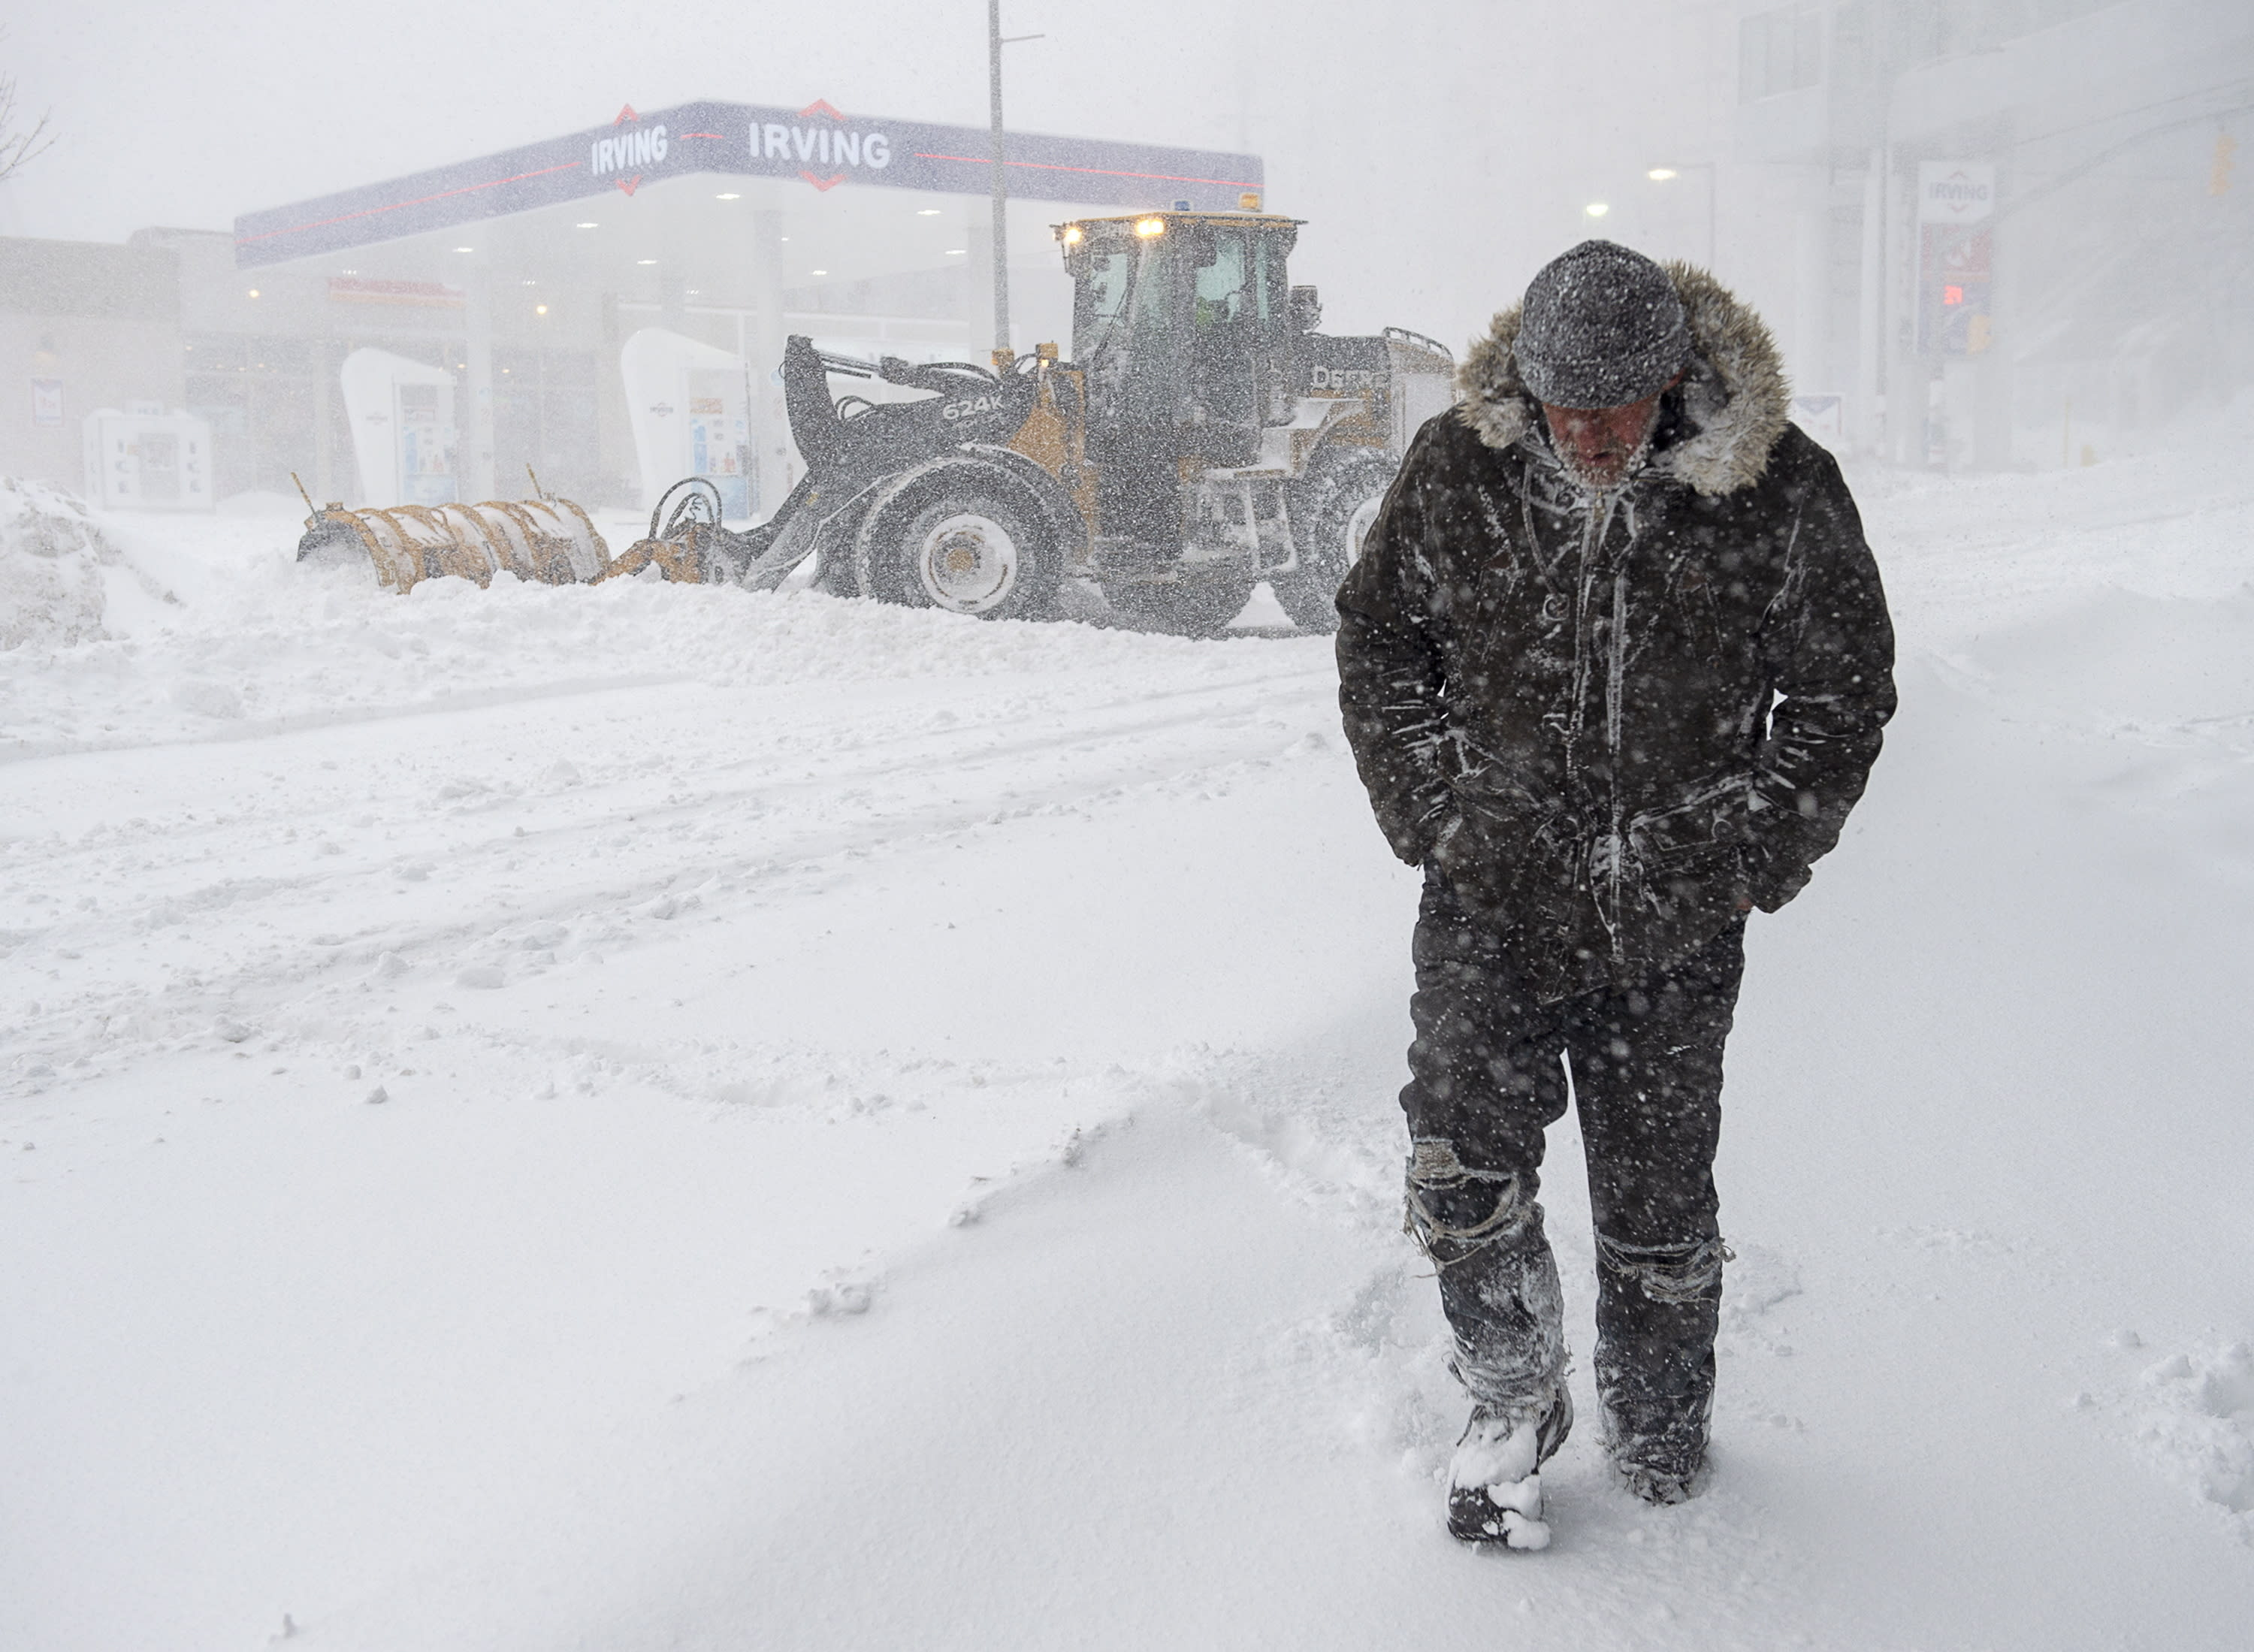 A pedestrian walks through heavy snow in St. John' Newfoundland on Friday, Jan. 17, 2020. The city has declared a state of emergency, ordering businesses closed and vehicles off the roads as blizzard conditions descend on the Newfoundland and Labrador capital. *Andrew Vaughan/The Canadian Press via AP)